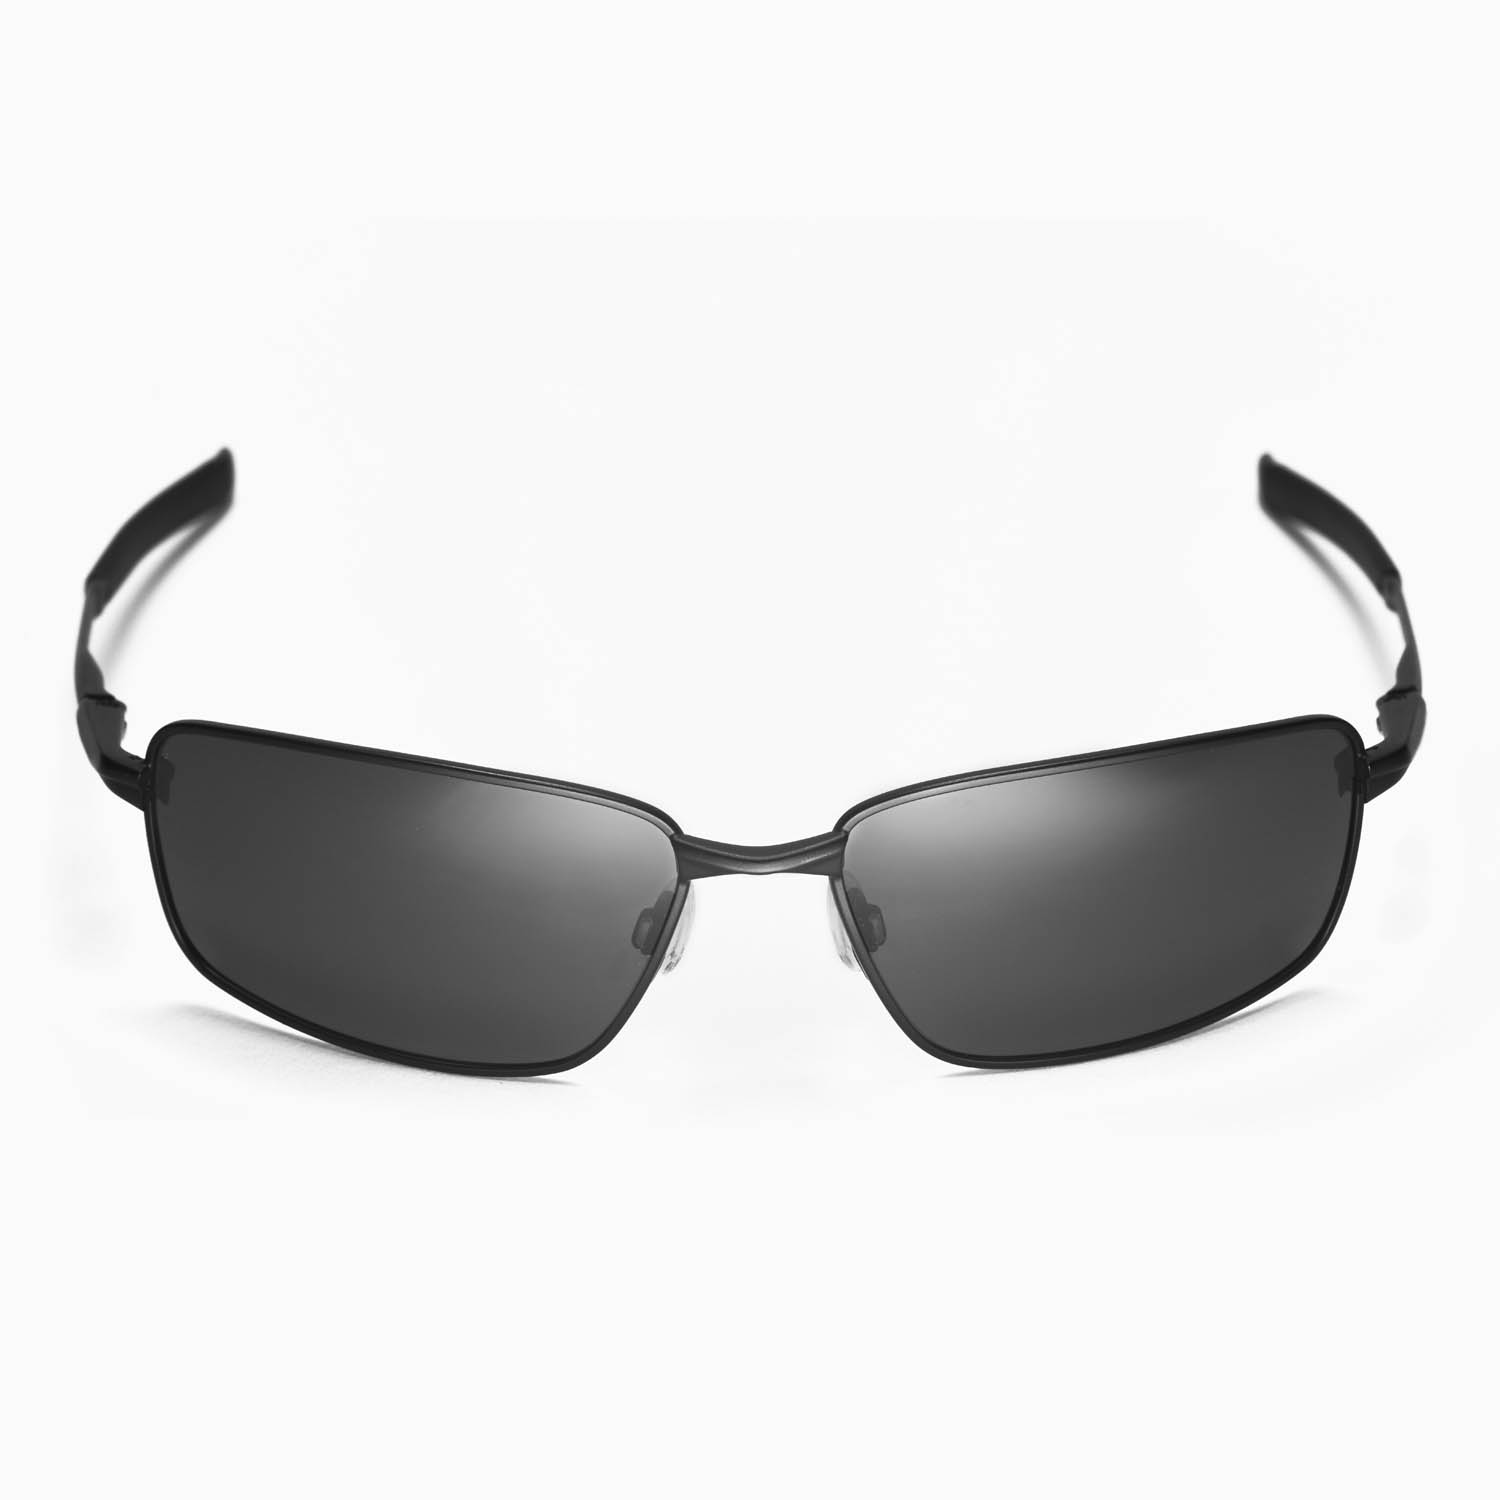 oakley splinter  New Walleva Polarized Black Lenses For Oakley Splinter